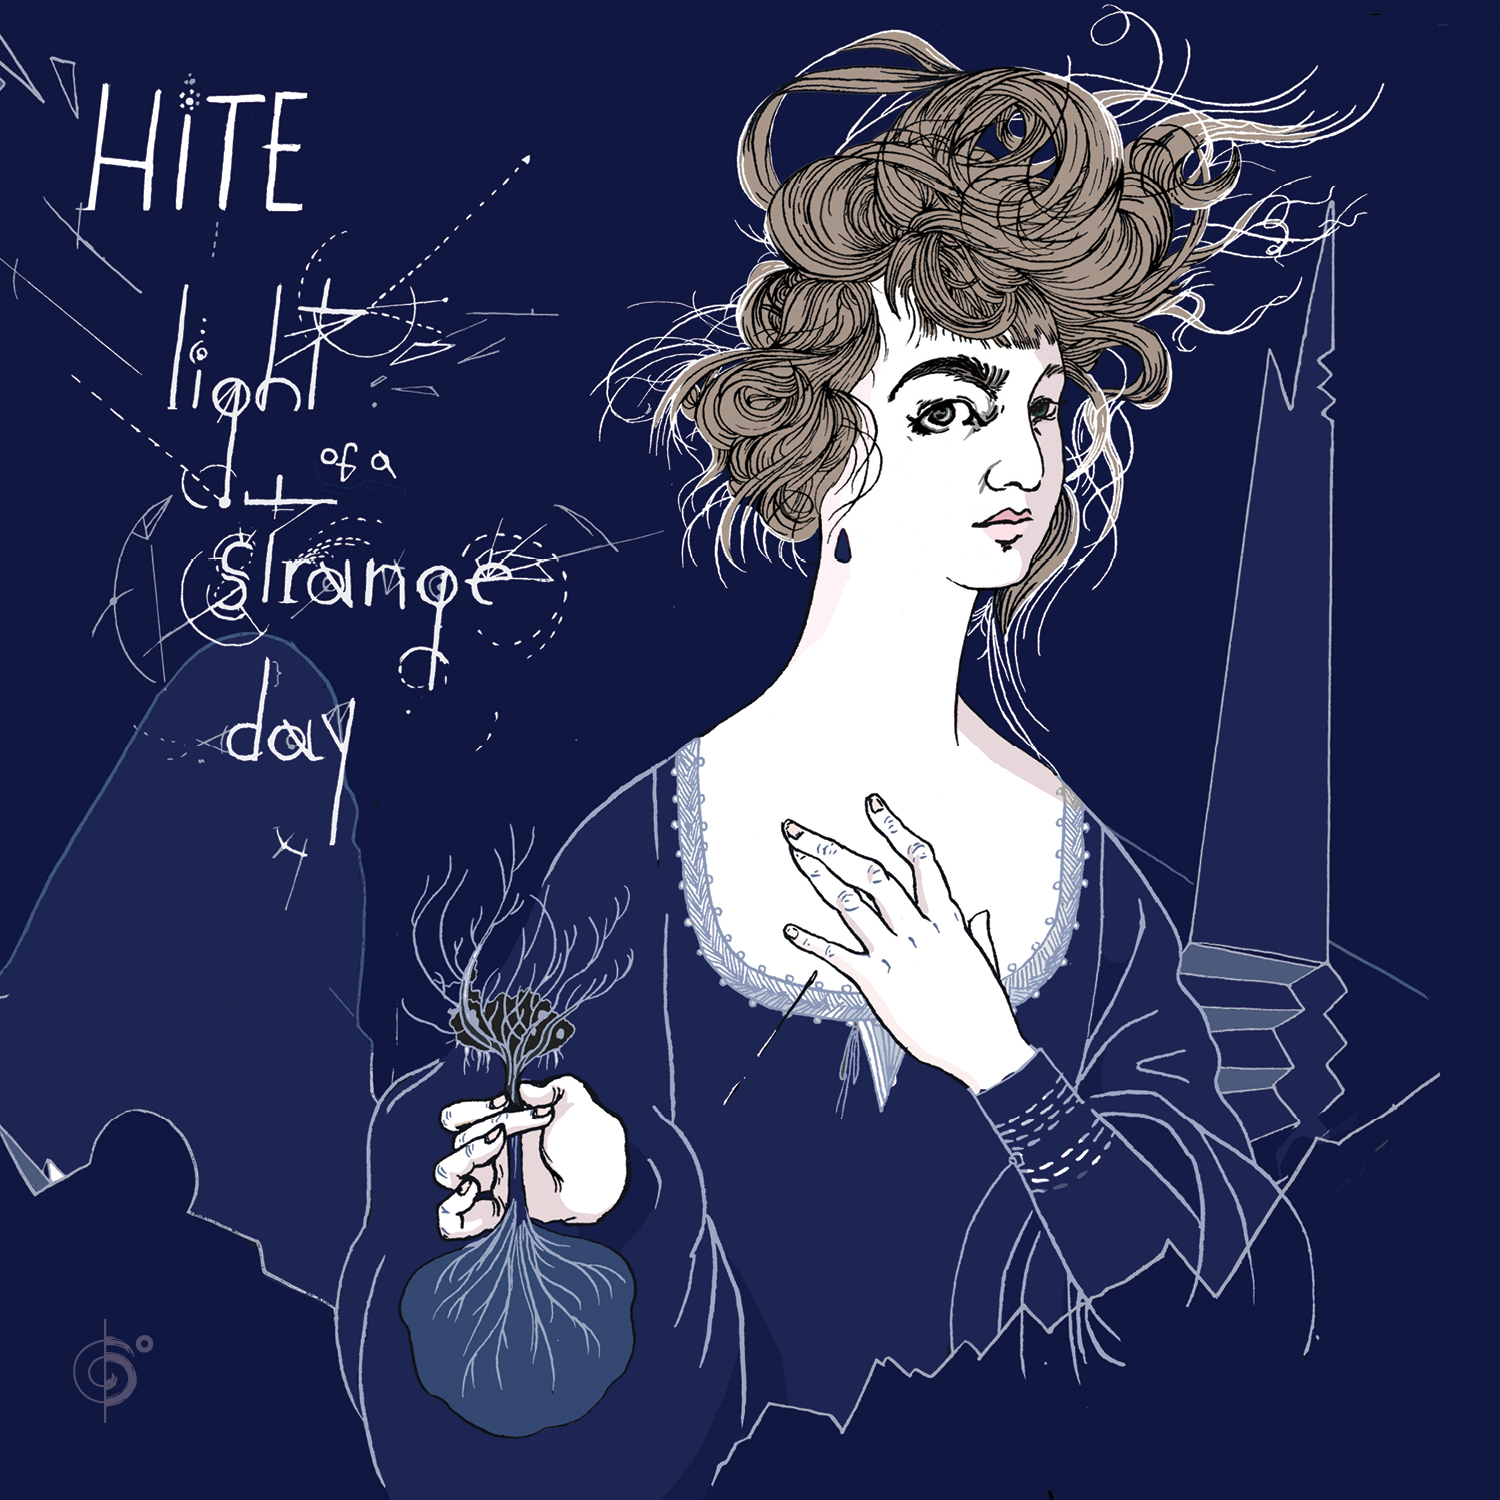 Hite – Light of a strange day out now!